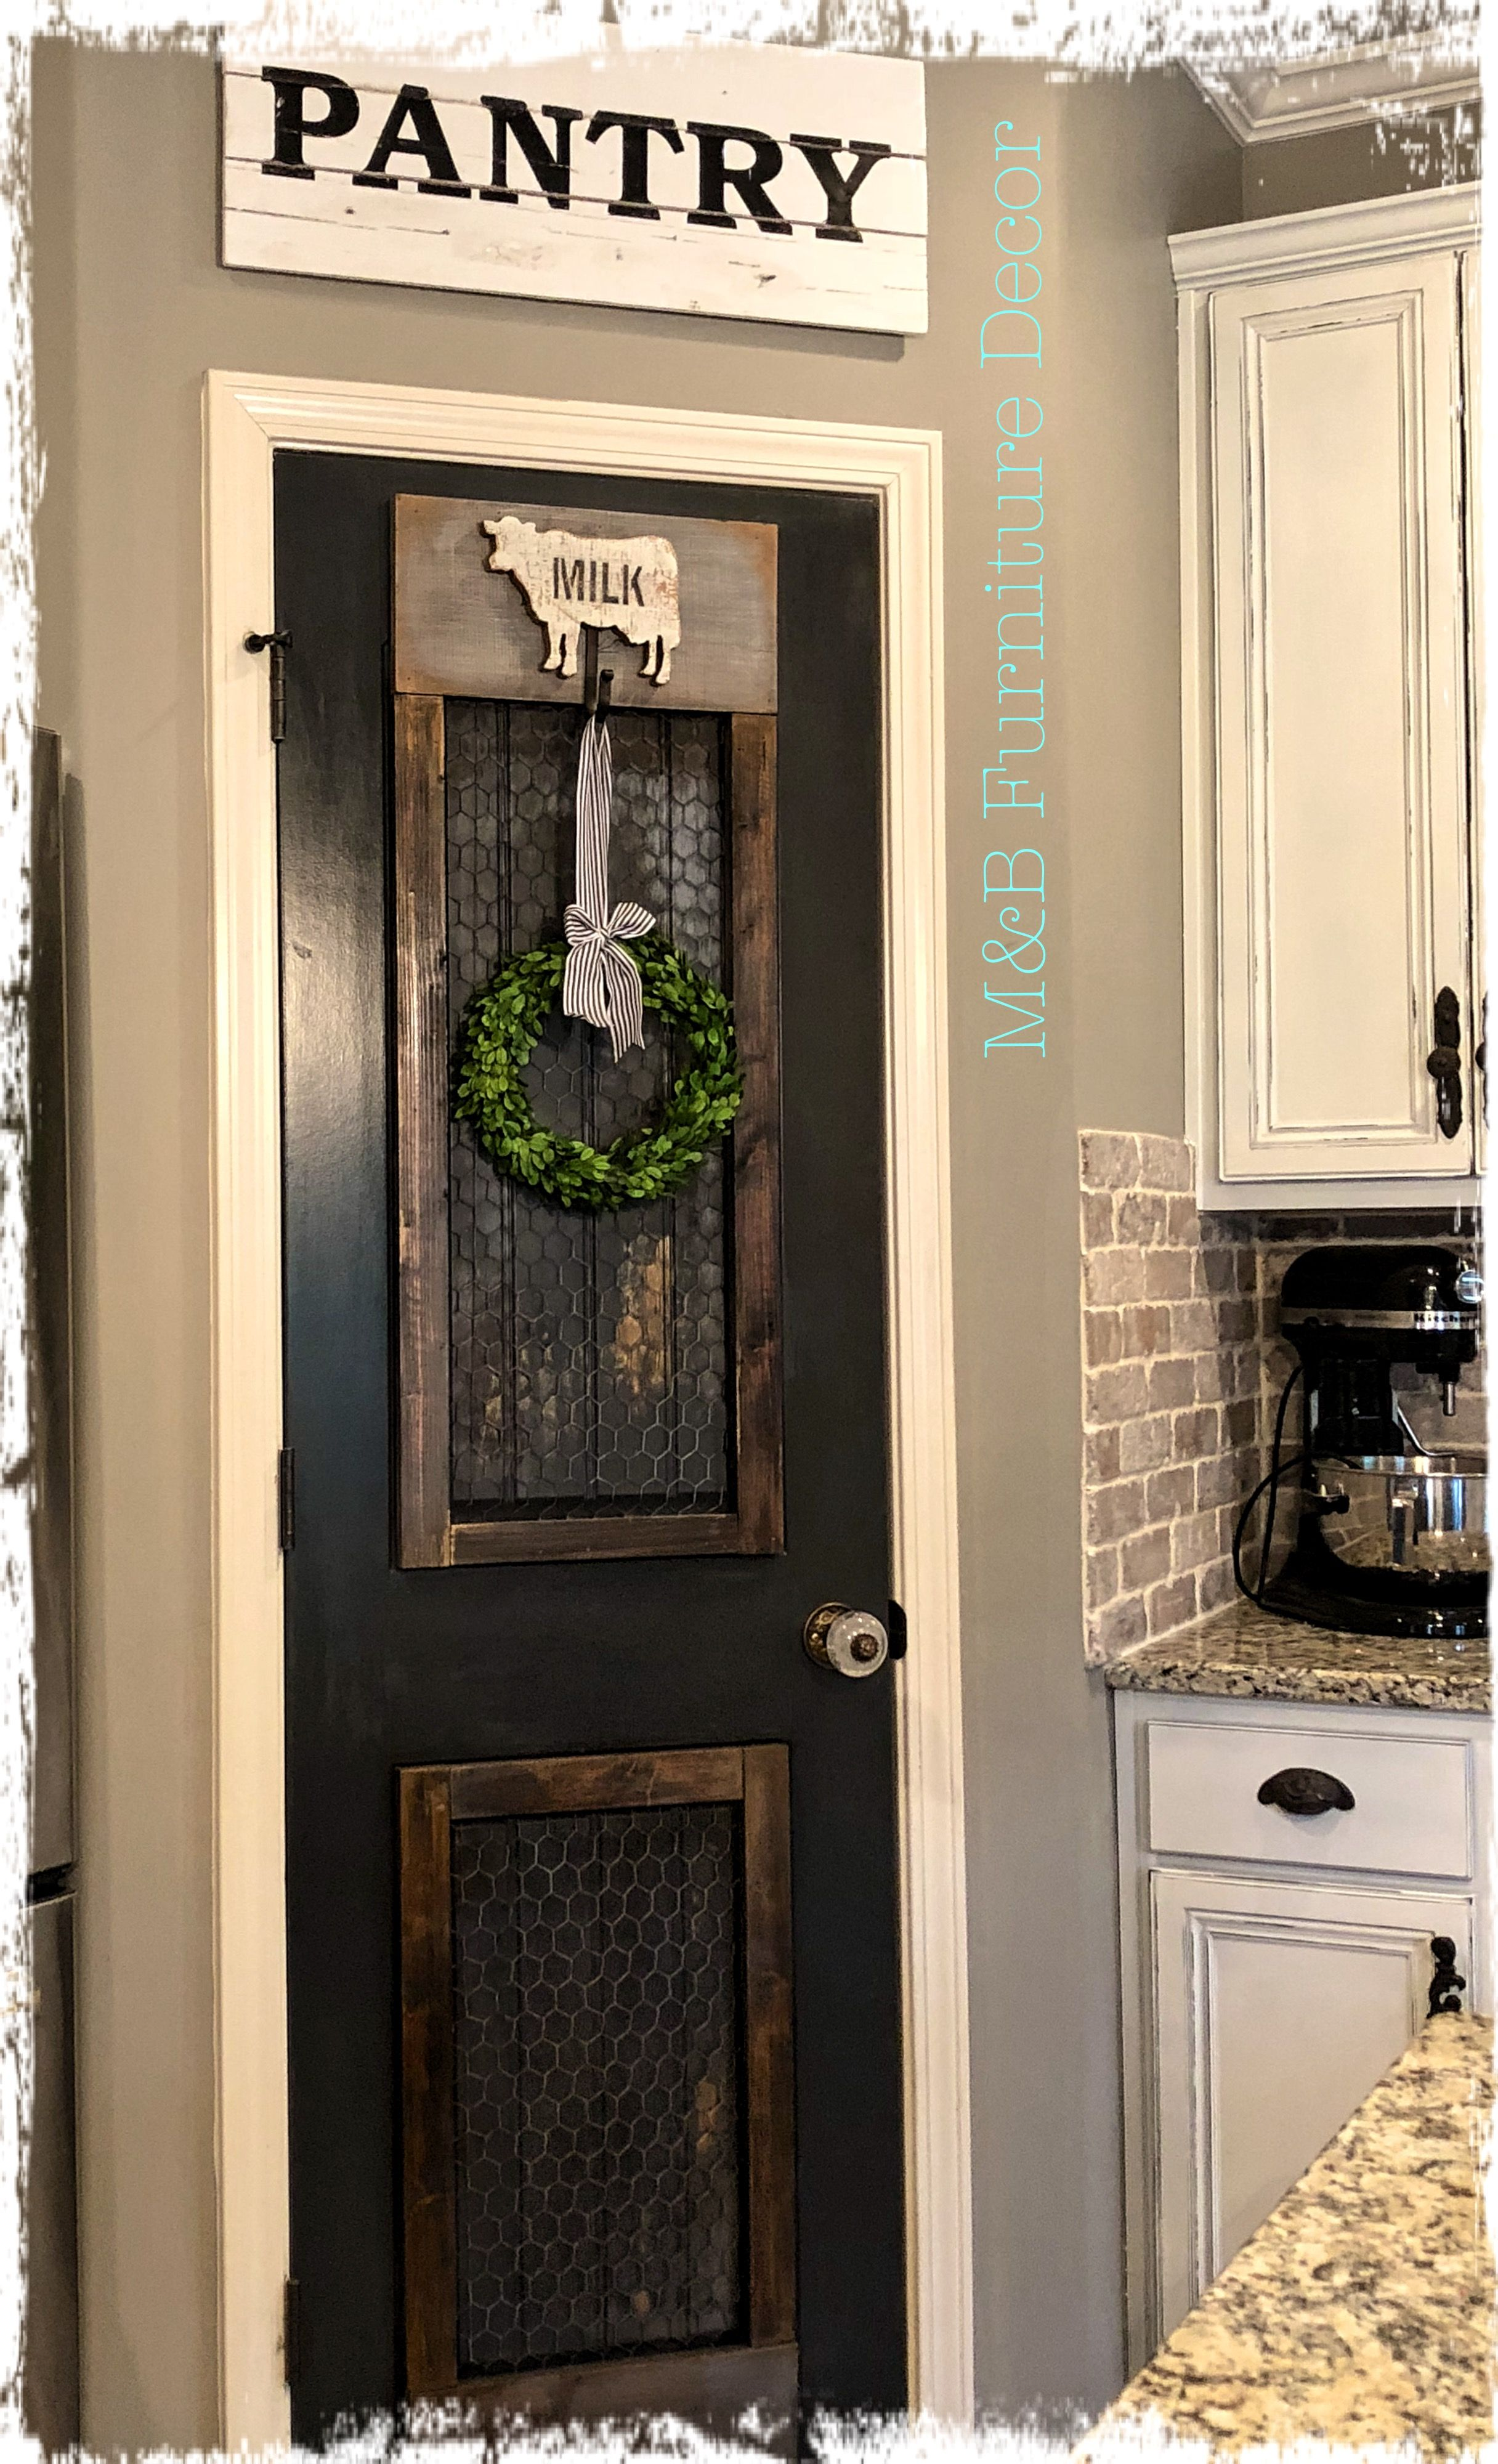 Pantry Door Designed And Built By M B Furniture Decor Pantry Door Decor Farmhouse Pantry Rustic Pantry